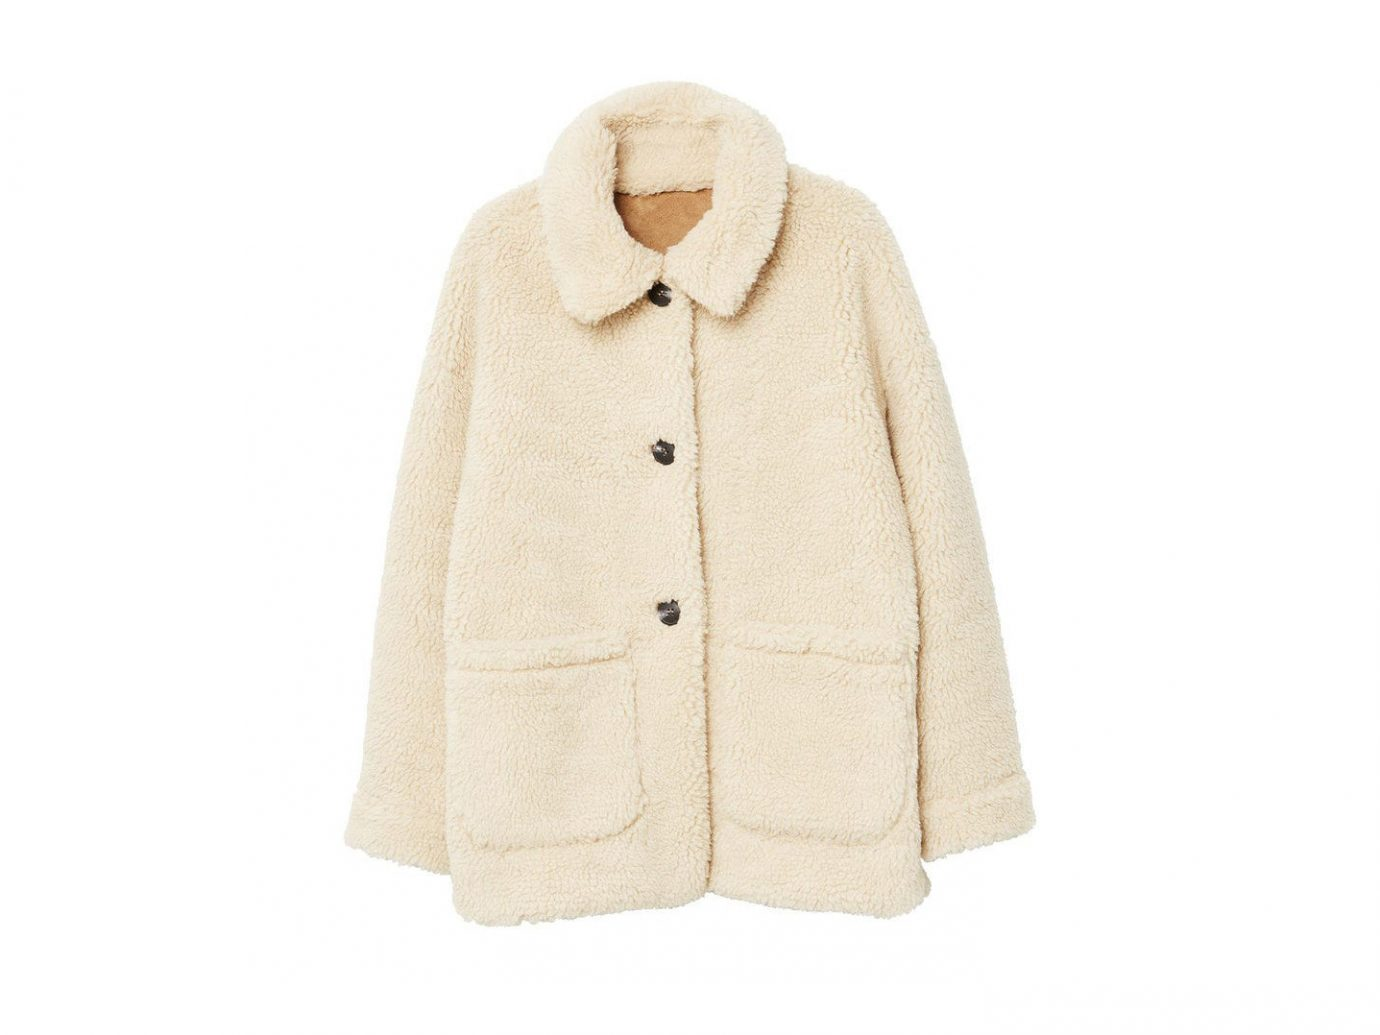 Style + Design Travel Shop coat fur clothing woolen wearing fur beige jacket sleeve overcoat tan